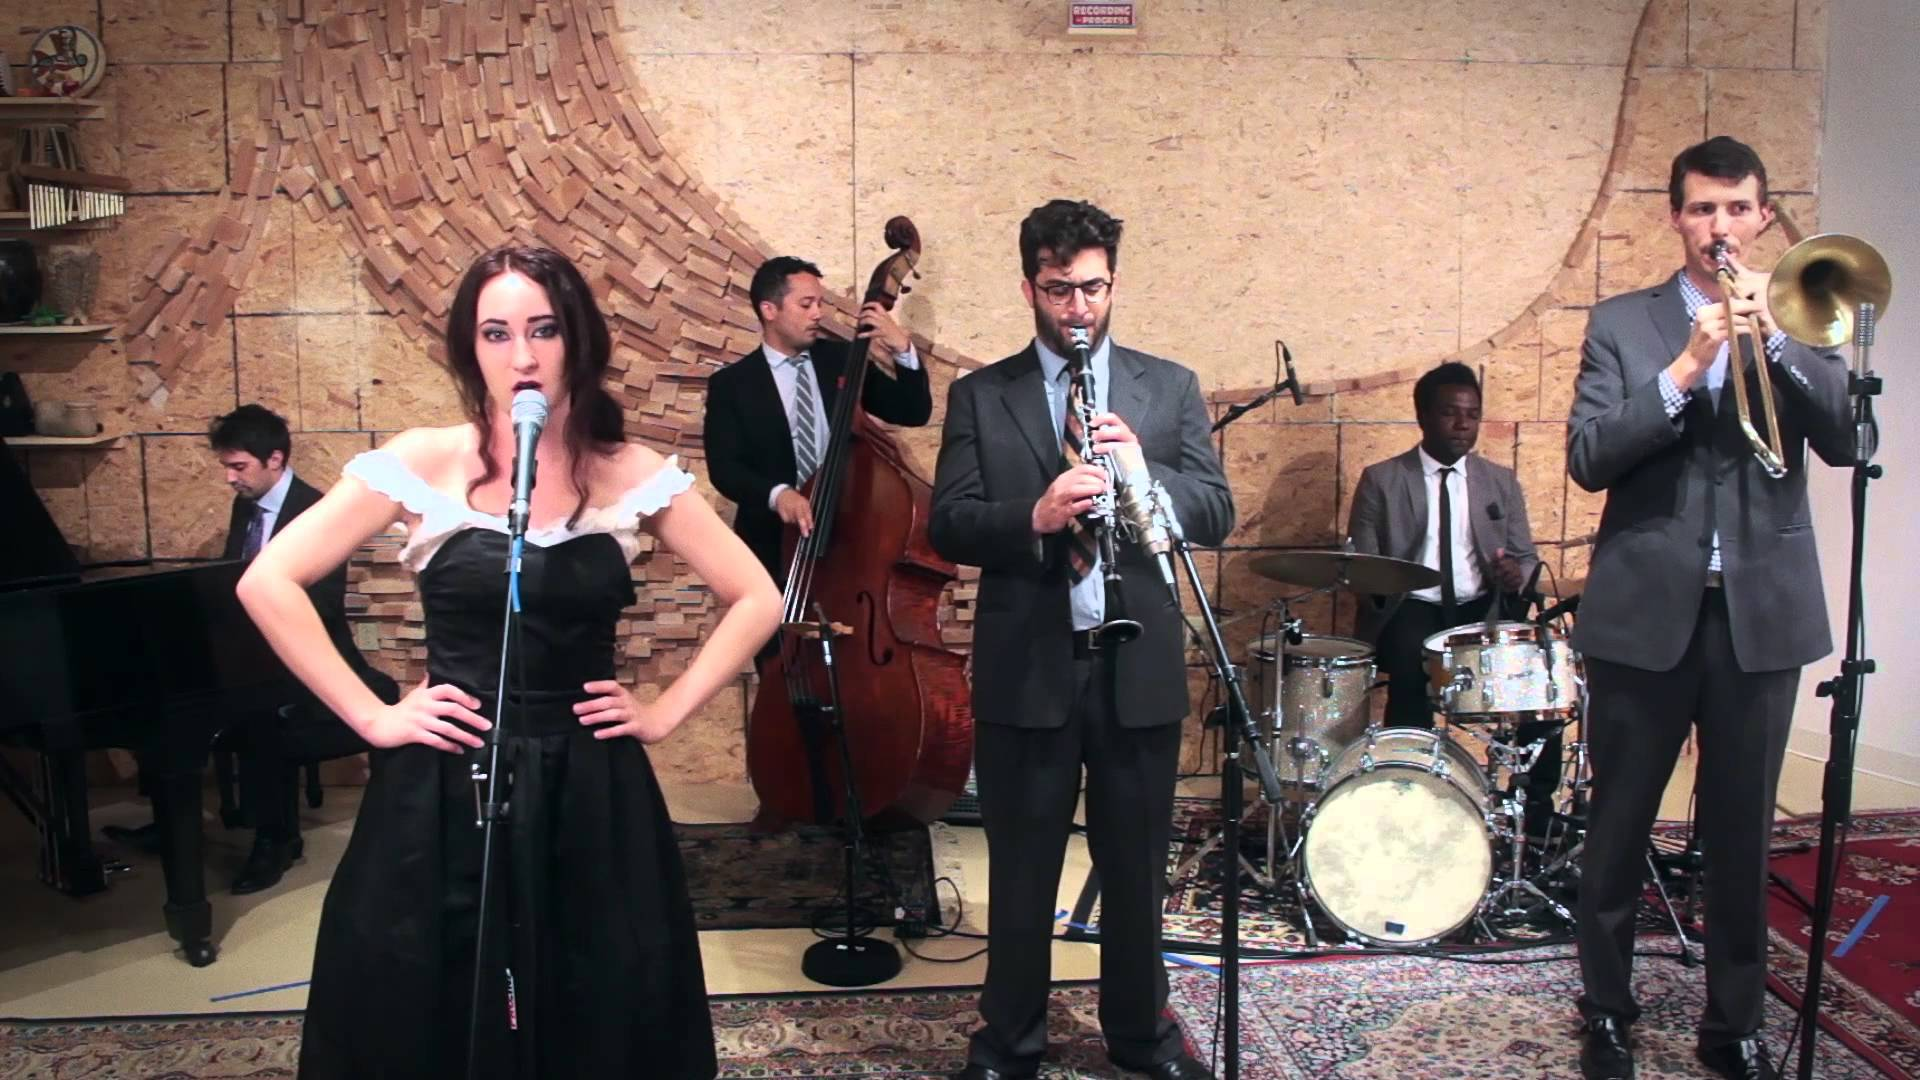 A Vintage 1912 Waltz Version of Cyndi Lauper's 1983 Song 'Girls Just Want to Have Fun' by Postmodern Jukebox